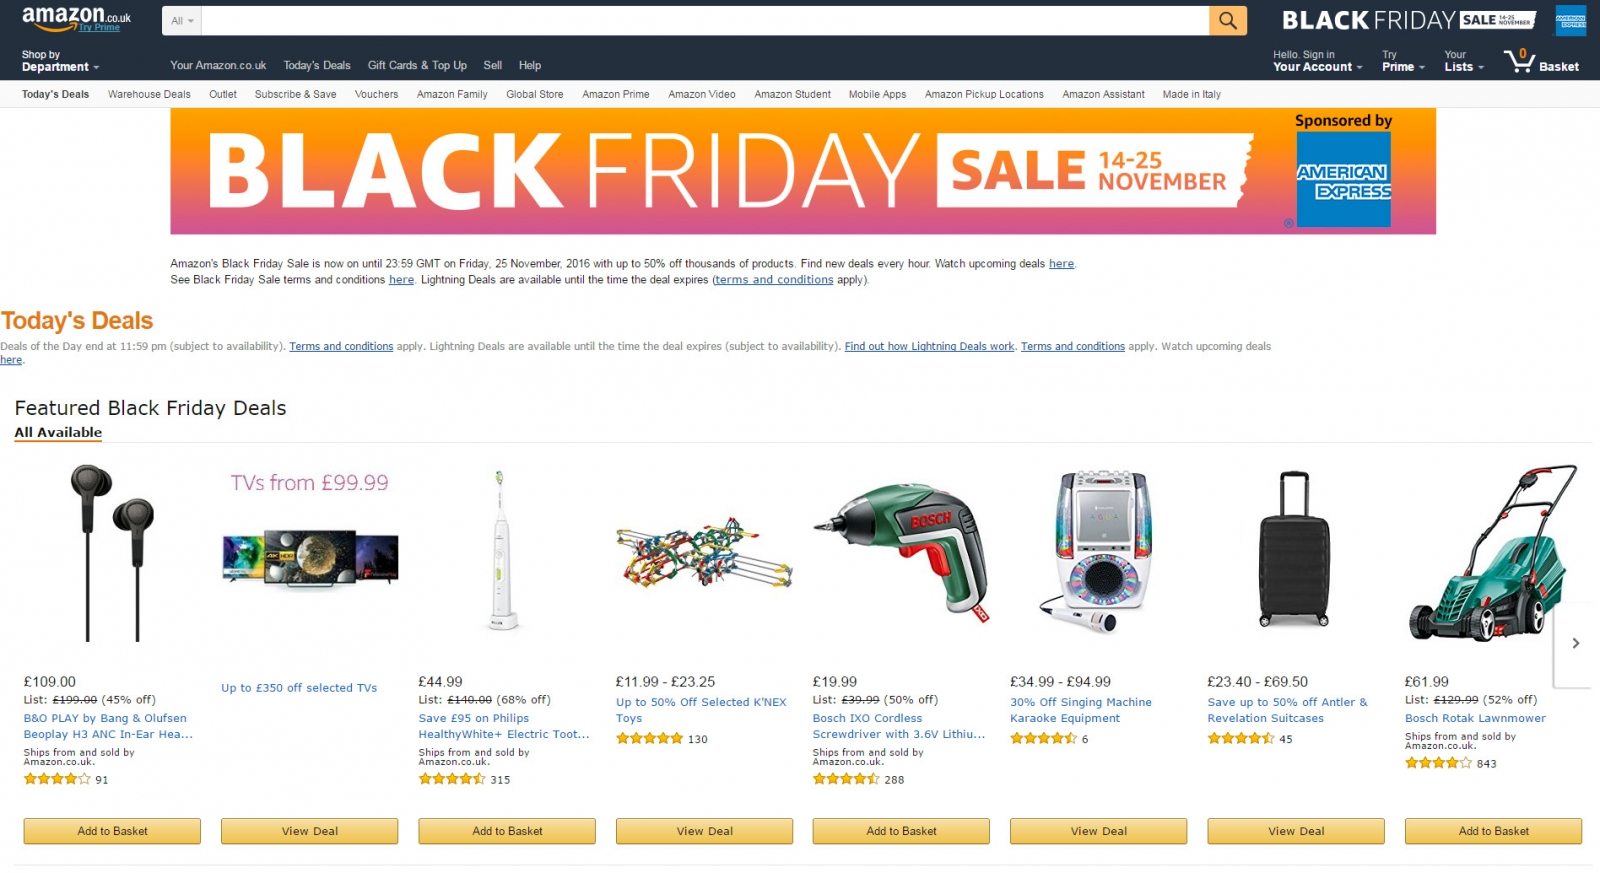 Amazon Black Friday Sales 2016 Here Are The Best Day One